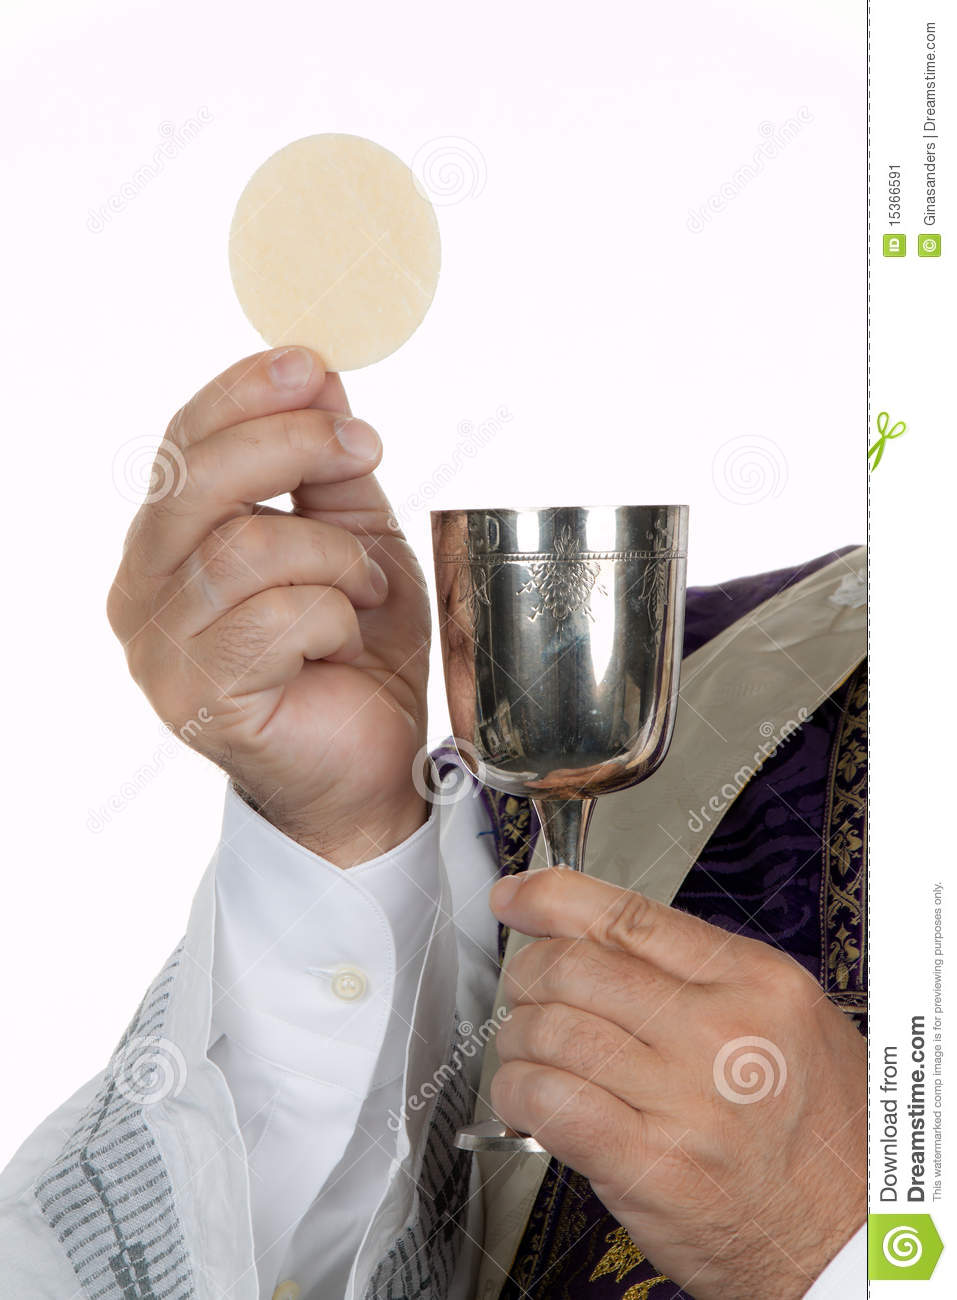 Catholic Priest Eucharist Catholic priest with chalice Catholic Chalice